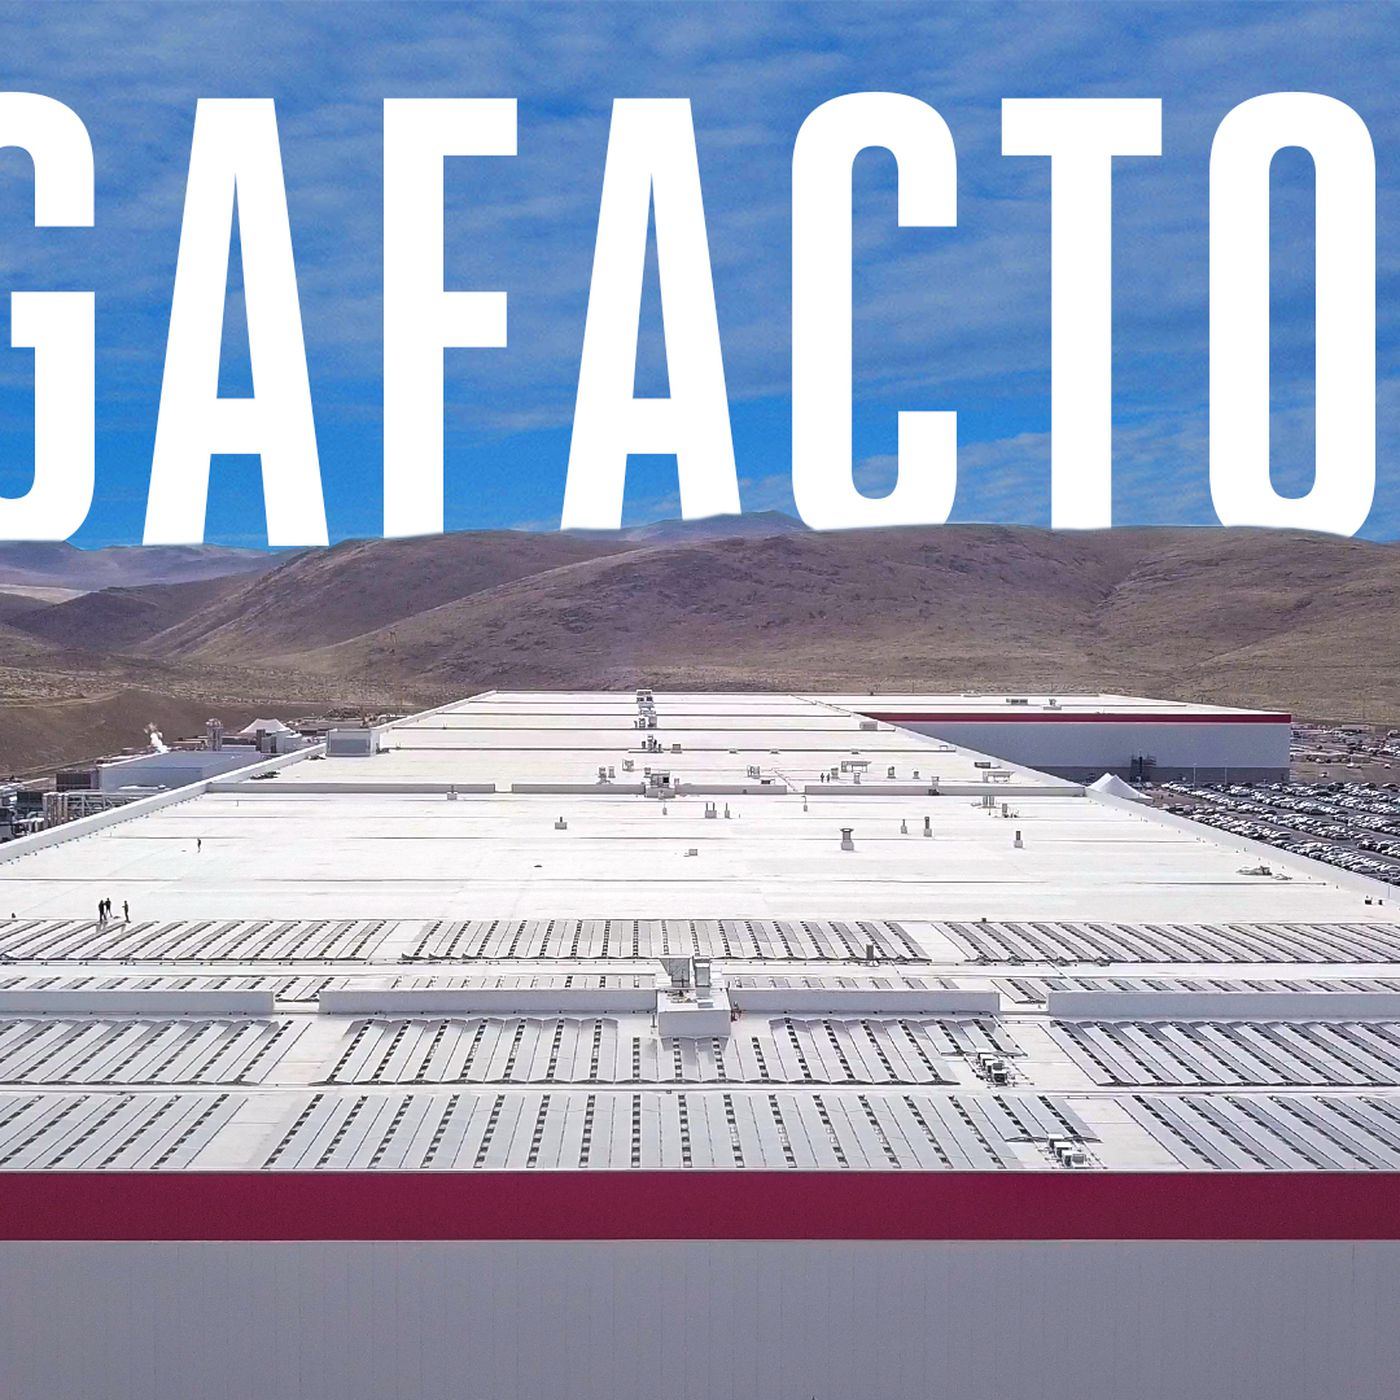 Tesla will live and die by the Gigafactory - The Verge